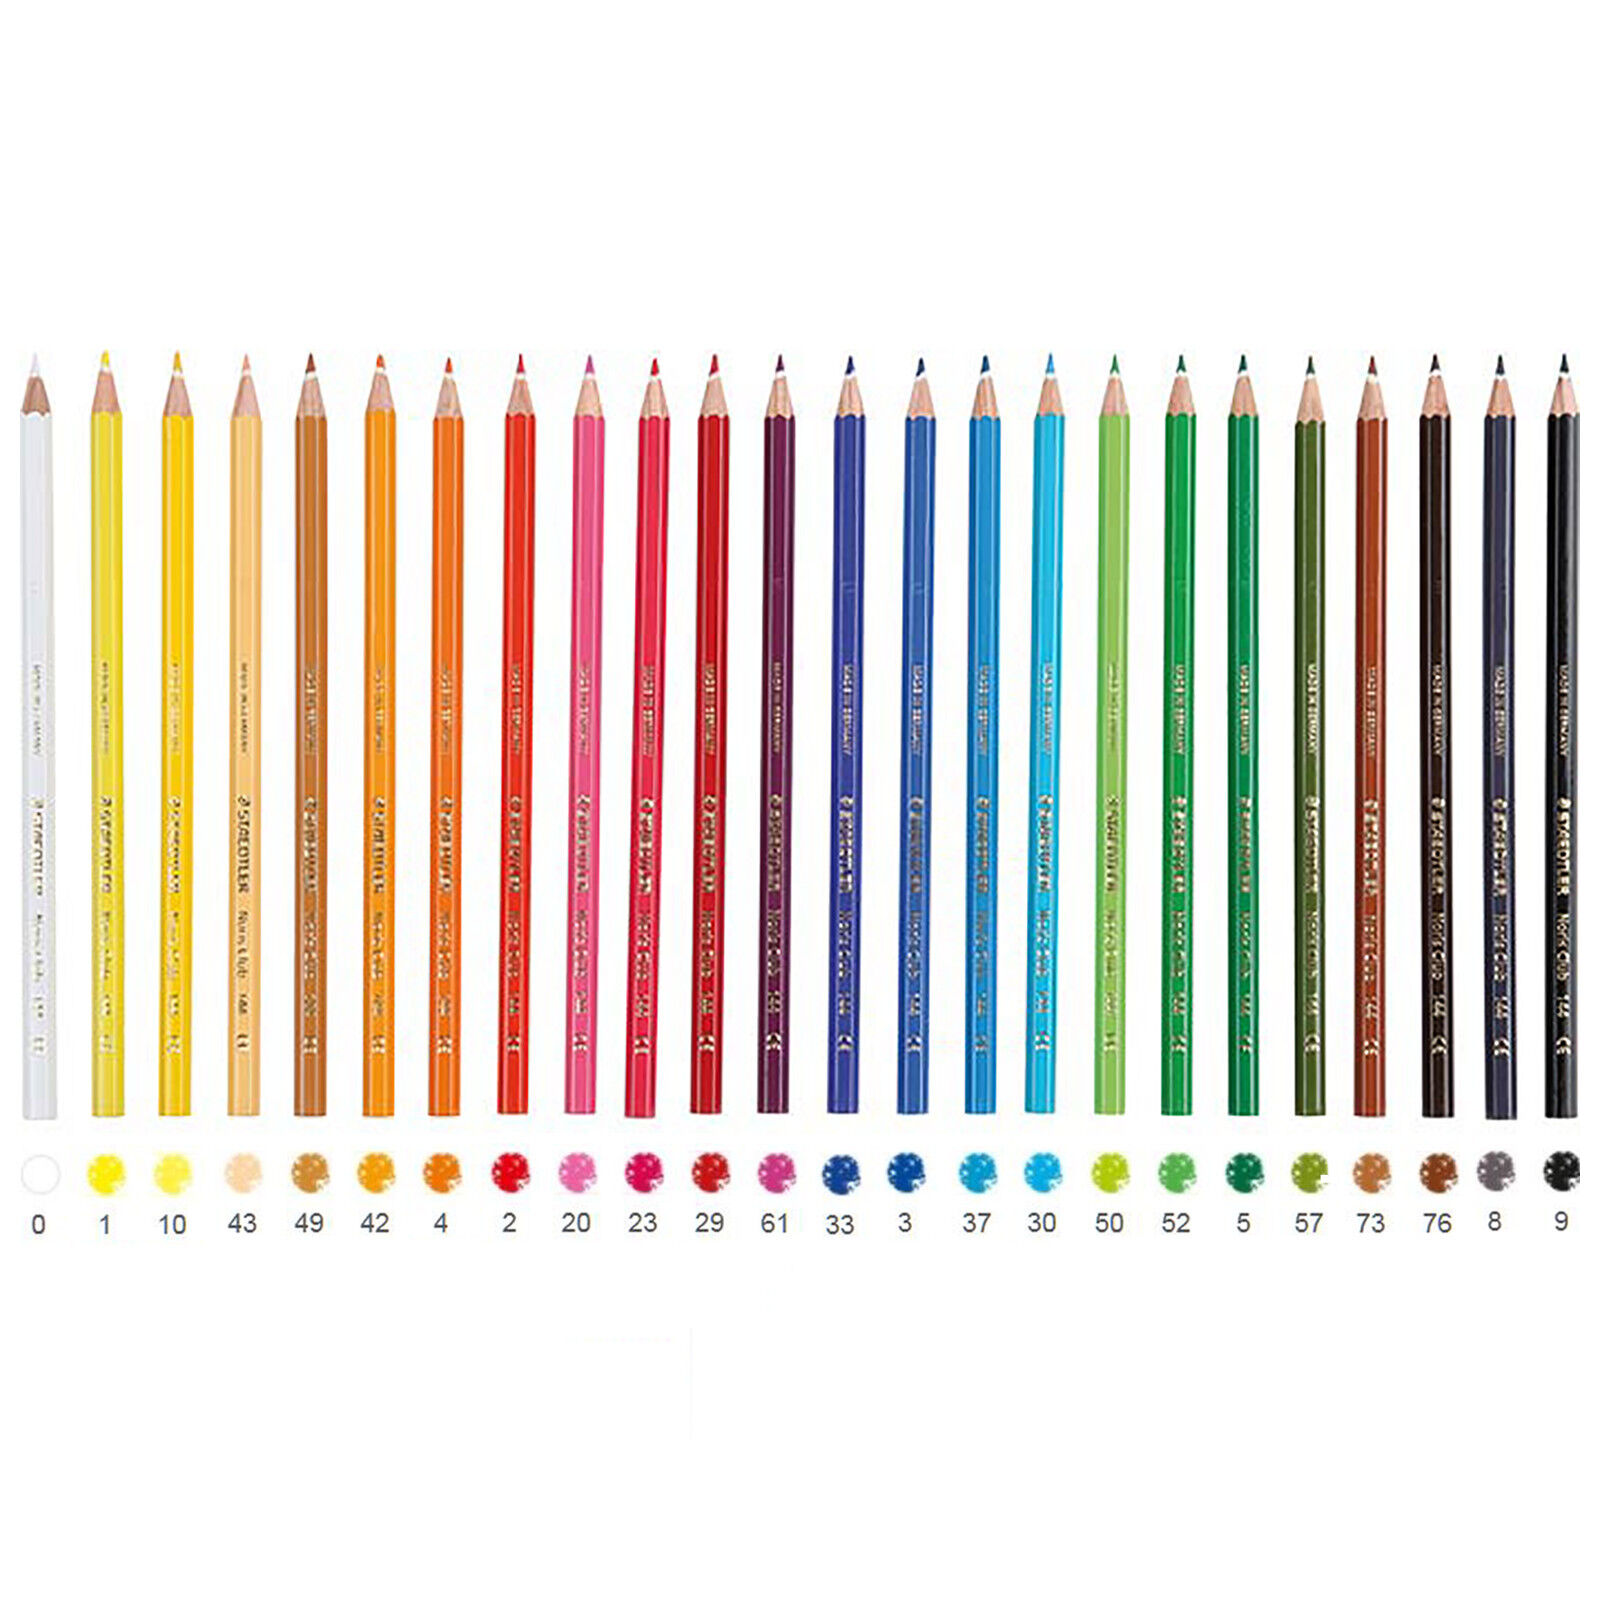 Staedtler Noris Club 144 NC24 Colouring Pencils Assorted Colours Pack of 24